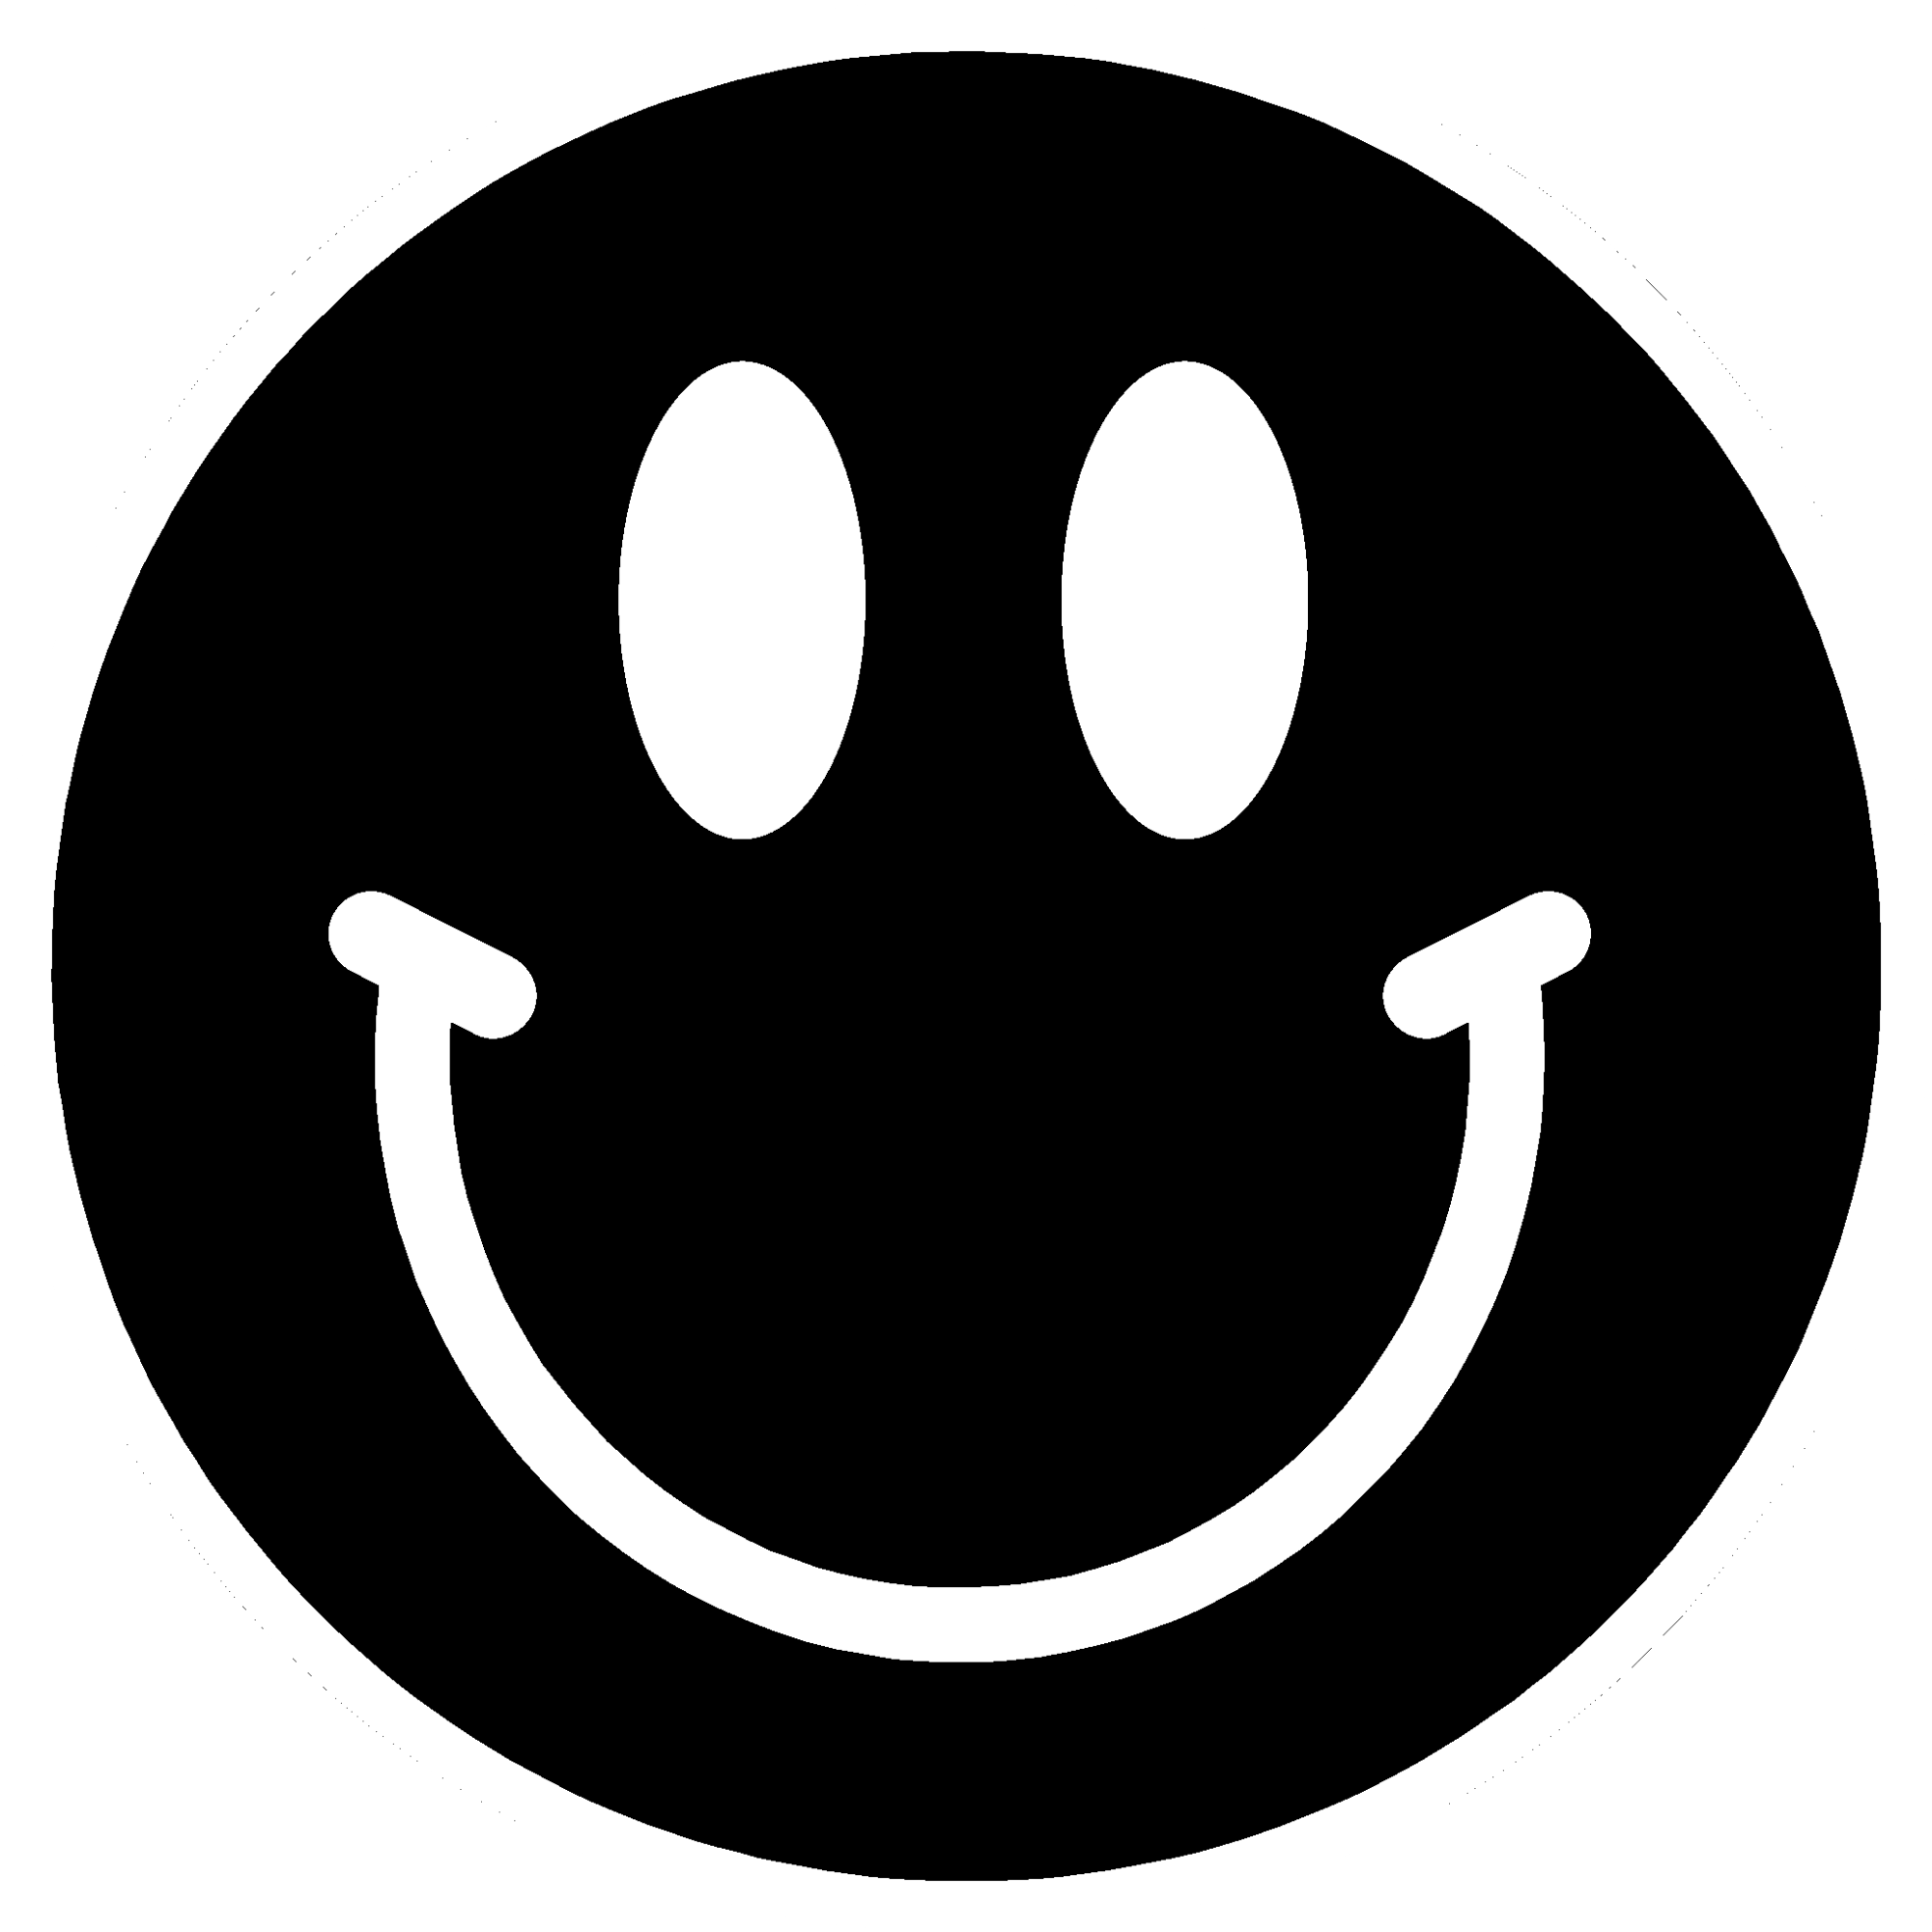 hight resolution of smiley face black backgrounds wallpaper cave bldzvs